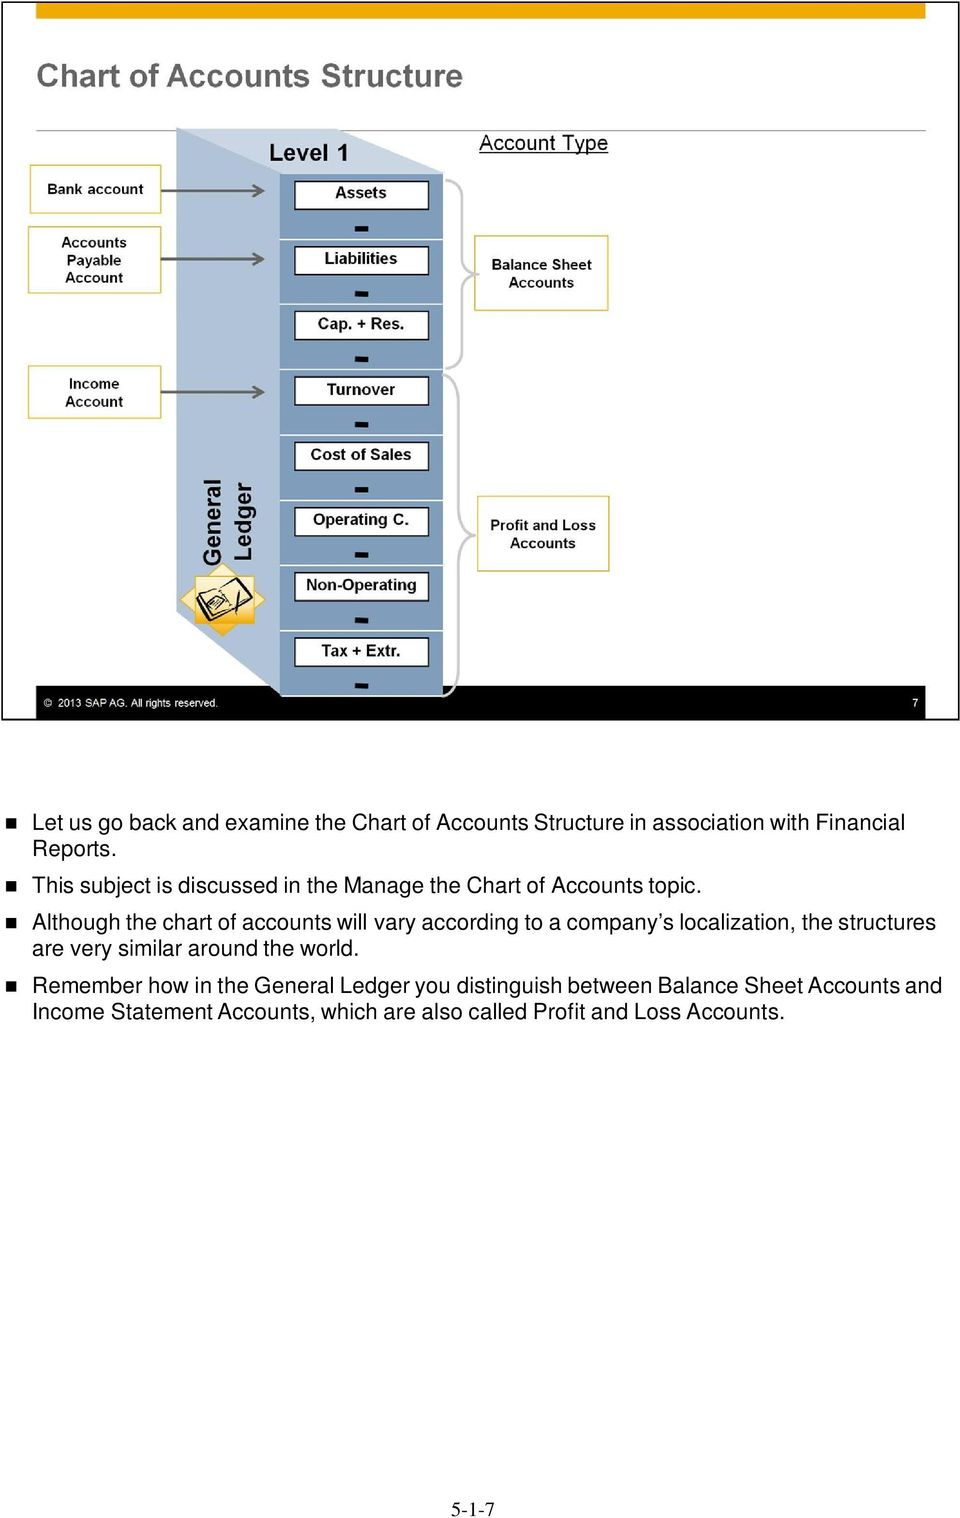 Although the chart of accounts will vary according to a company s localization, the structures are very similar